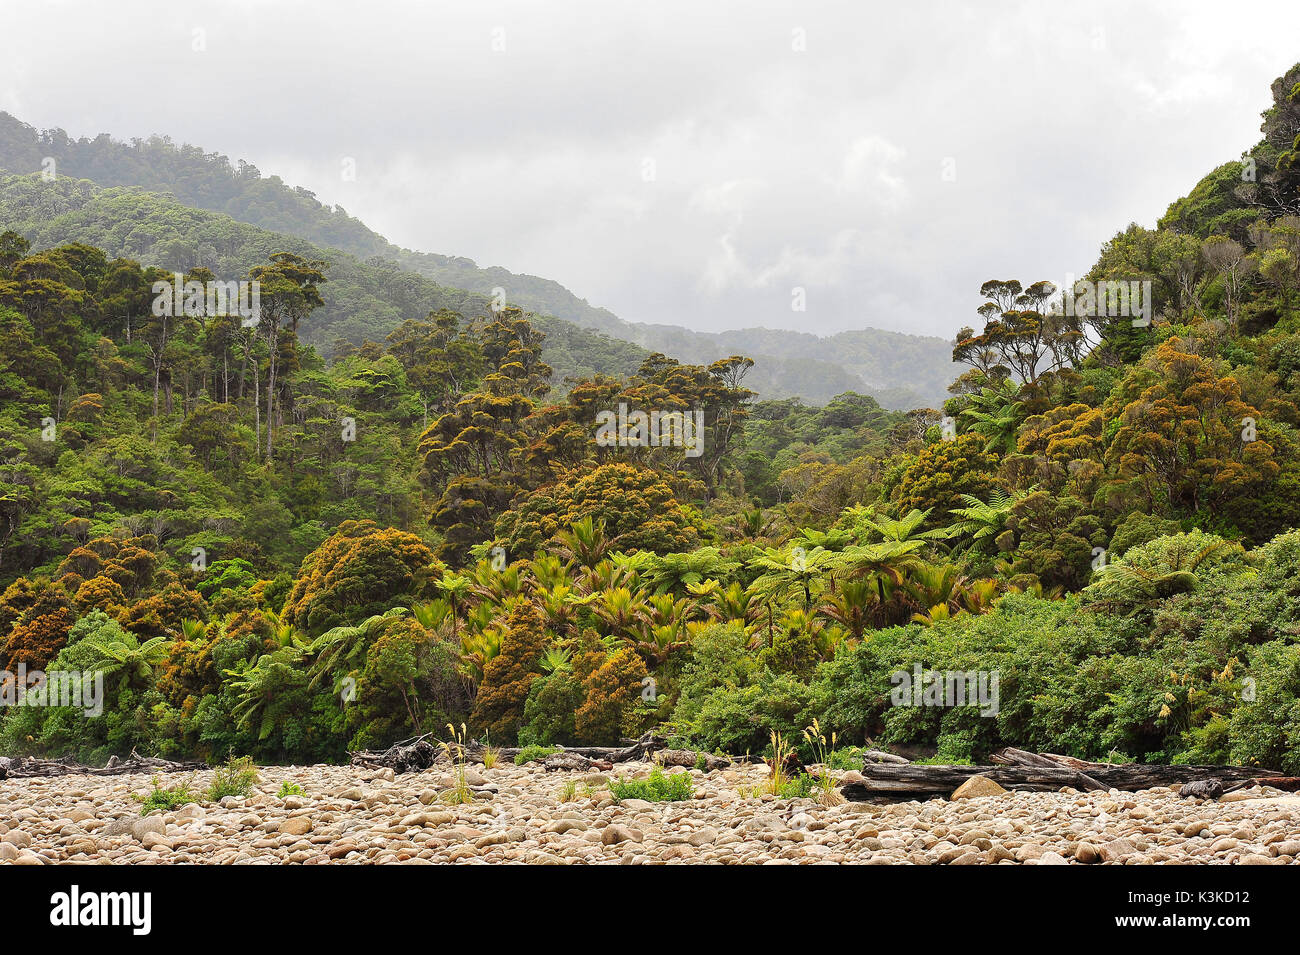 Jungle of New Zealand with stony brook bed in the foreground and many palms, ferns etc. overcast cloudy / tropical sky. - Stock Image